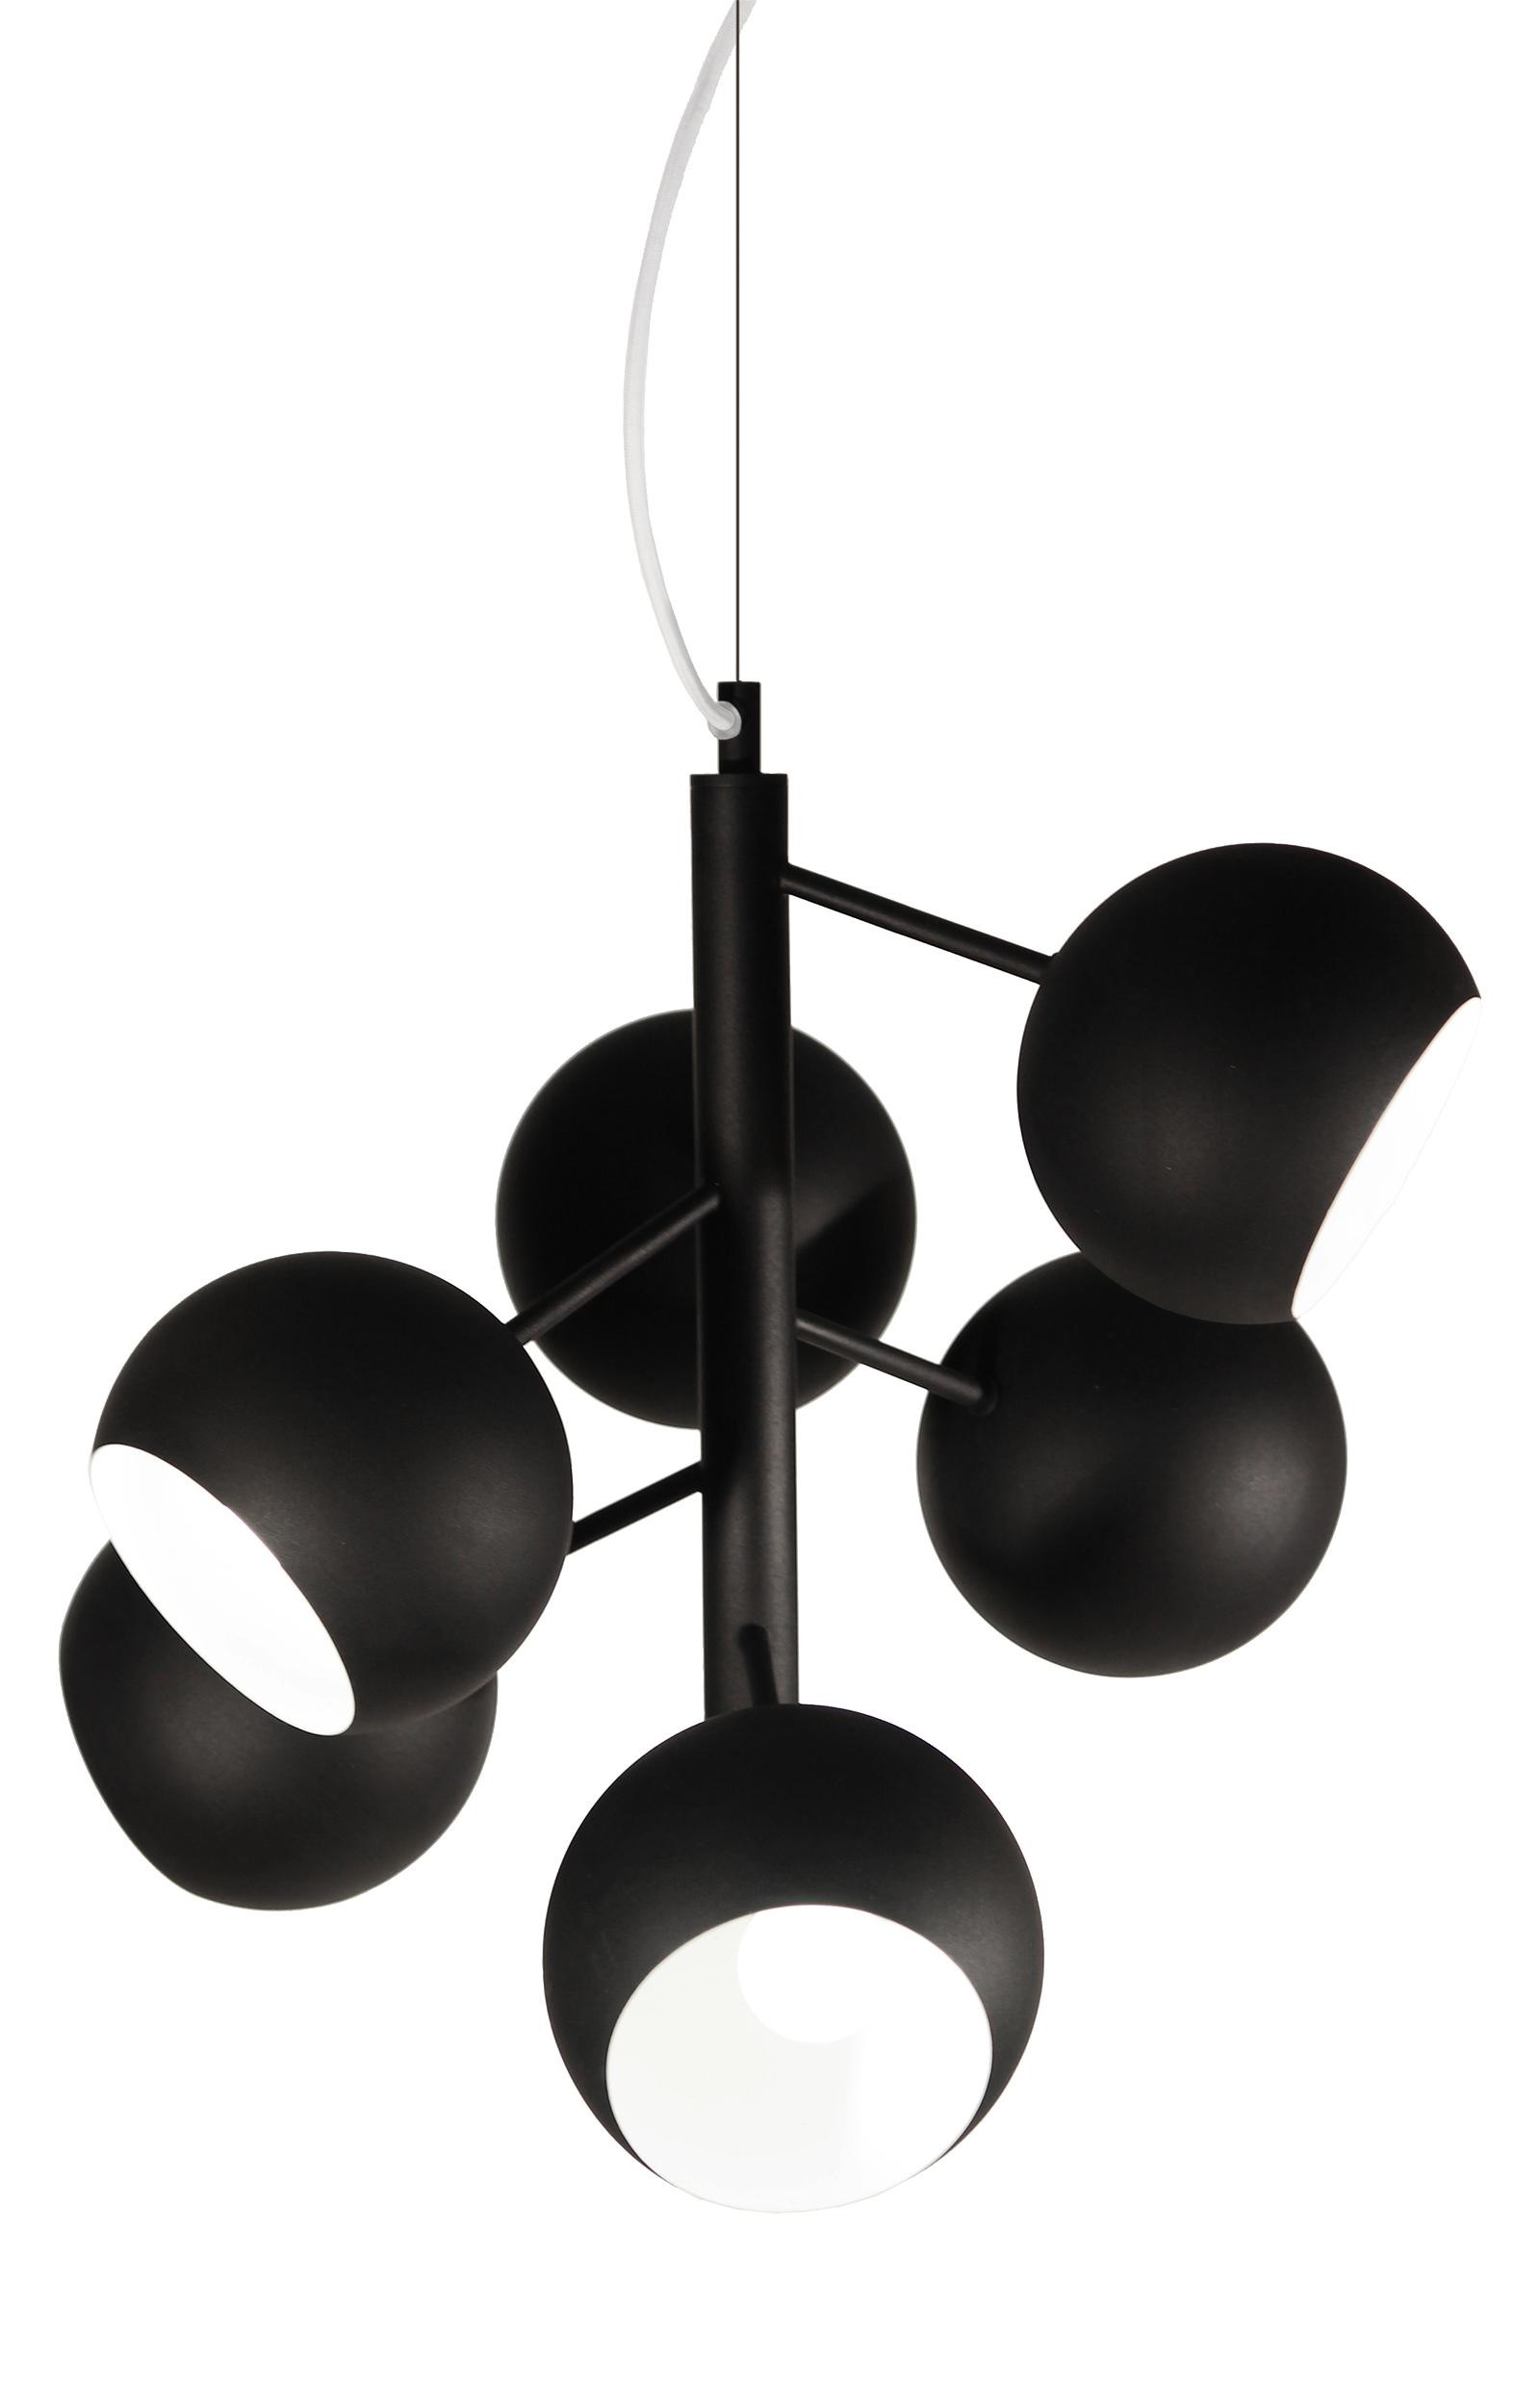 uk fitting plumen products only black pendant light cap drop